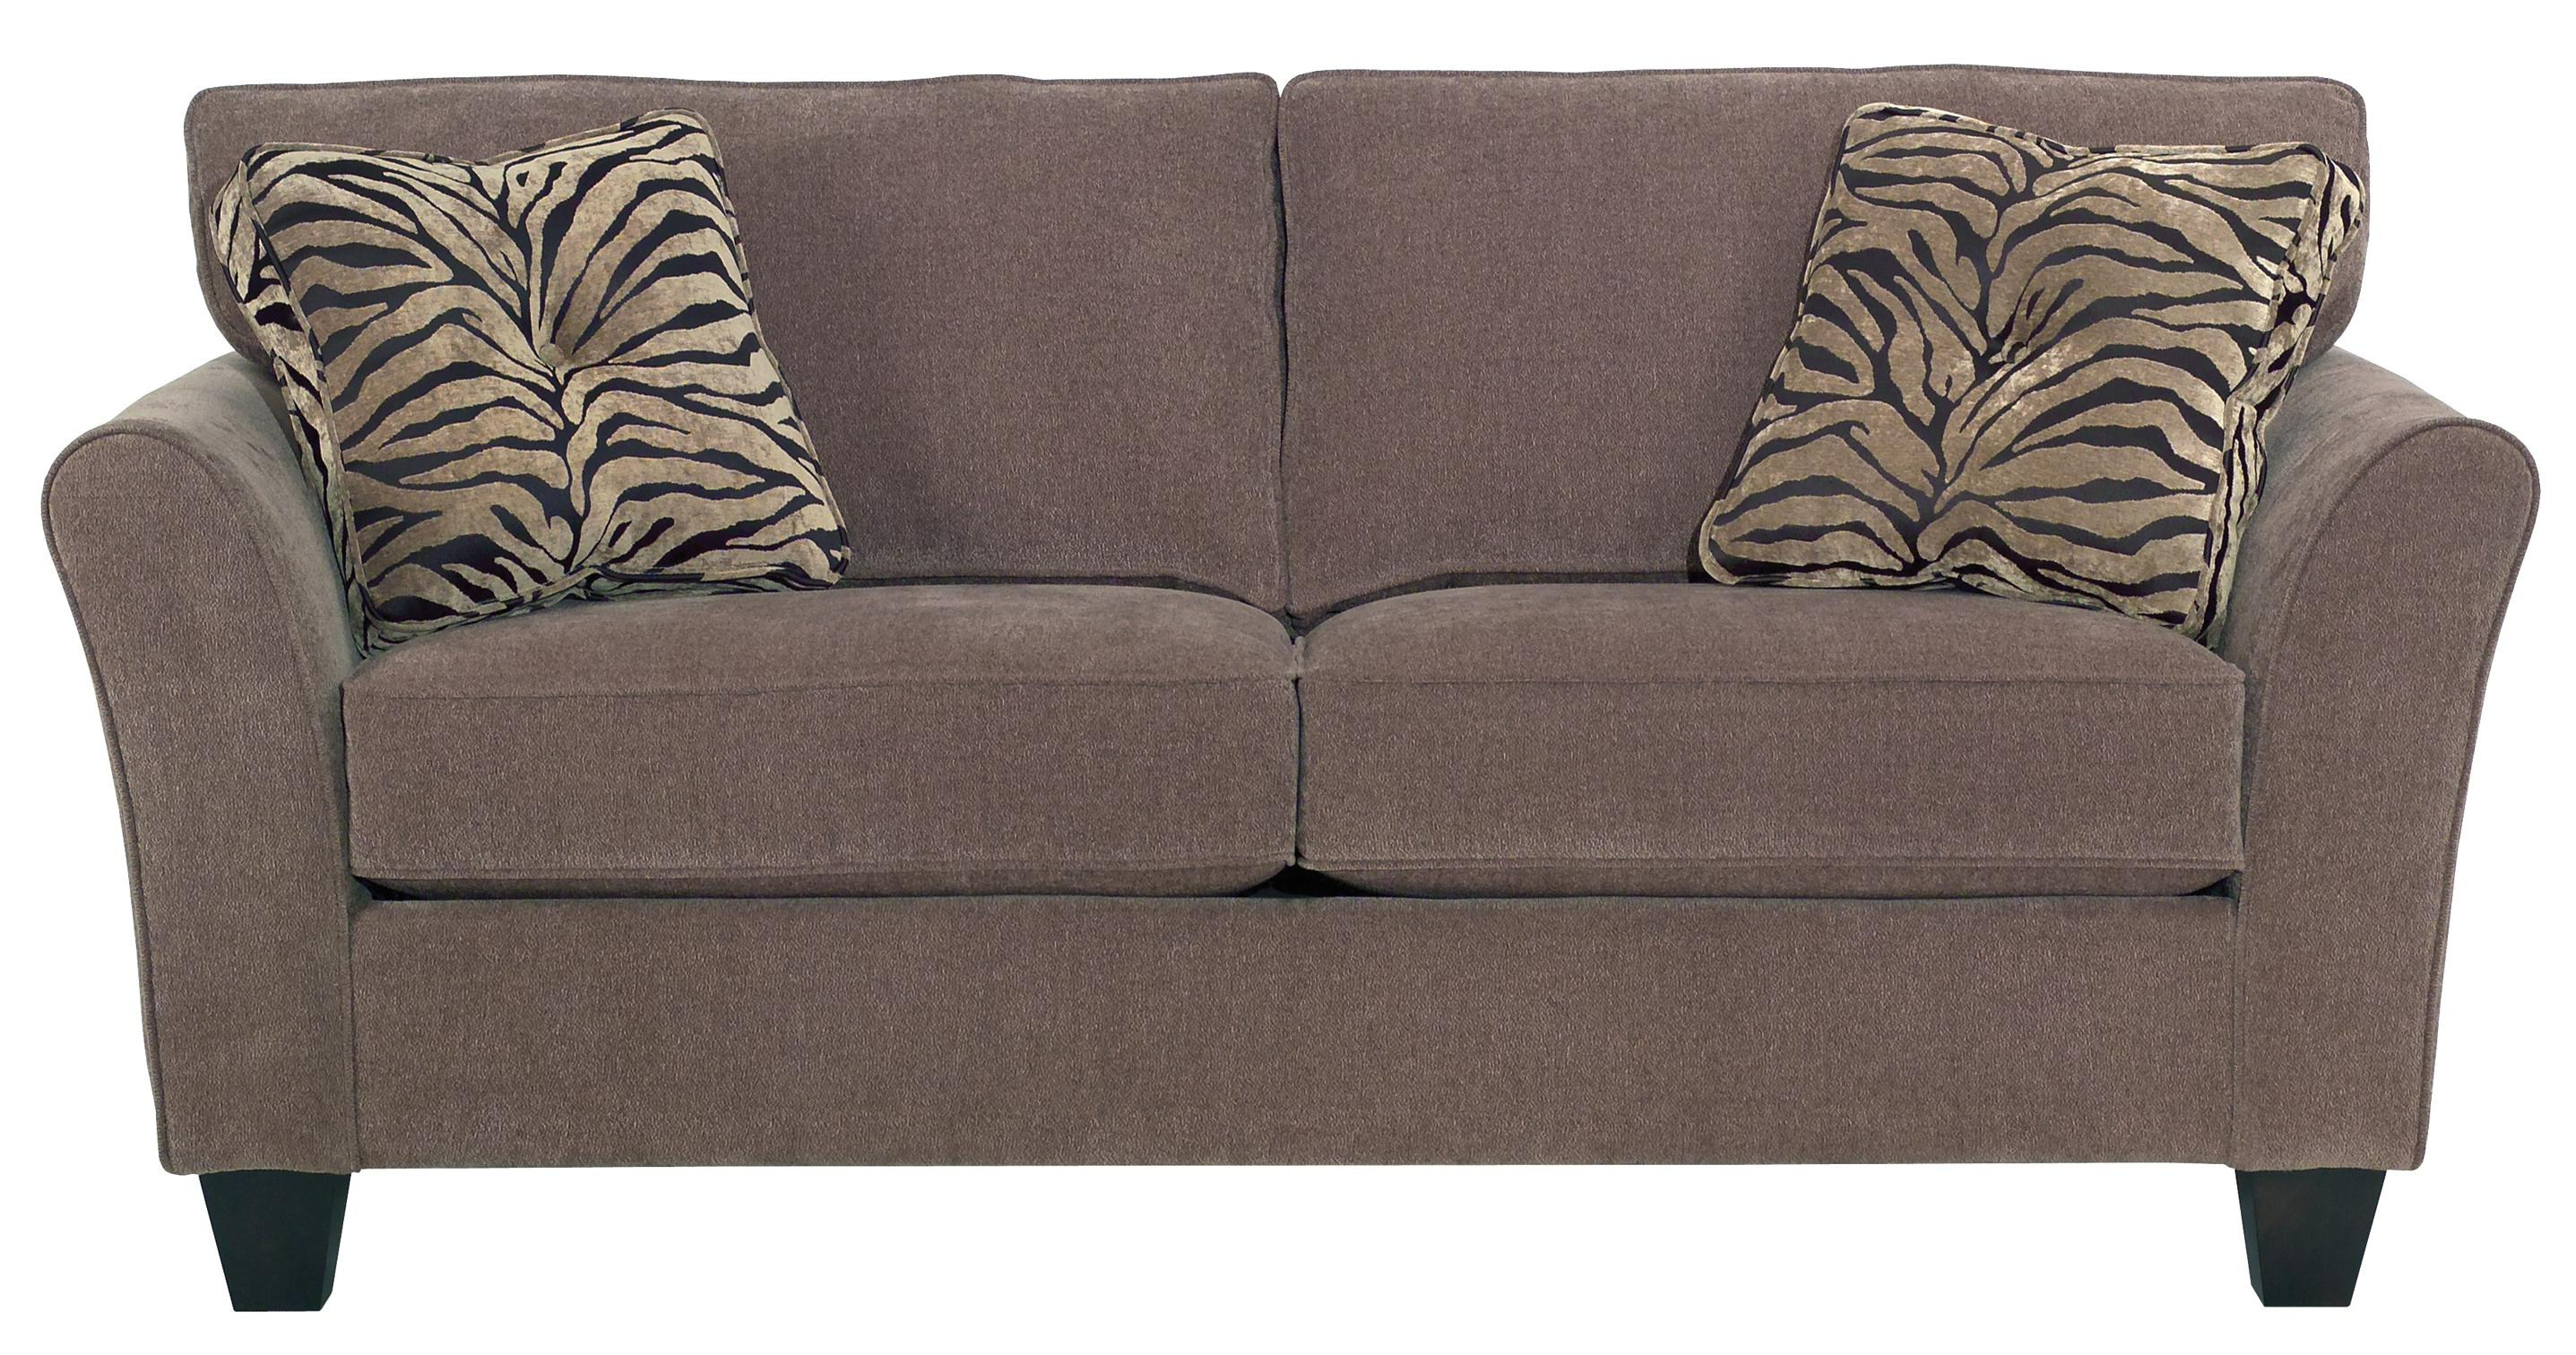 Broyhill Furniture Maddie Apartment Sofa - Item Number: 6517-2